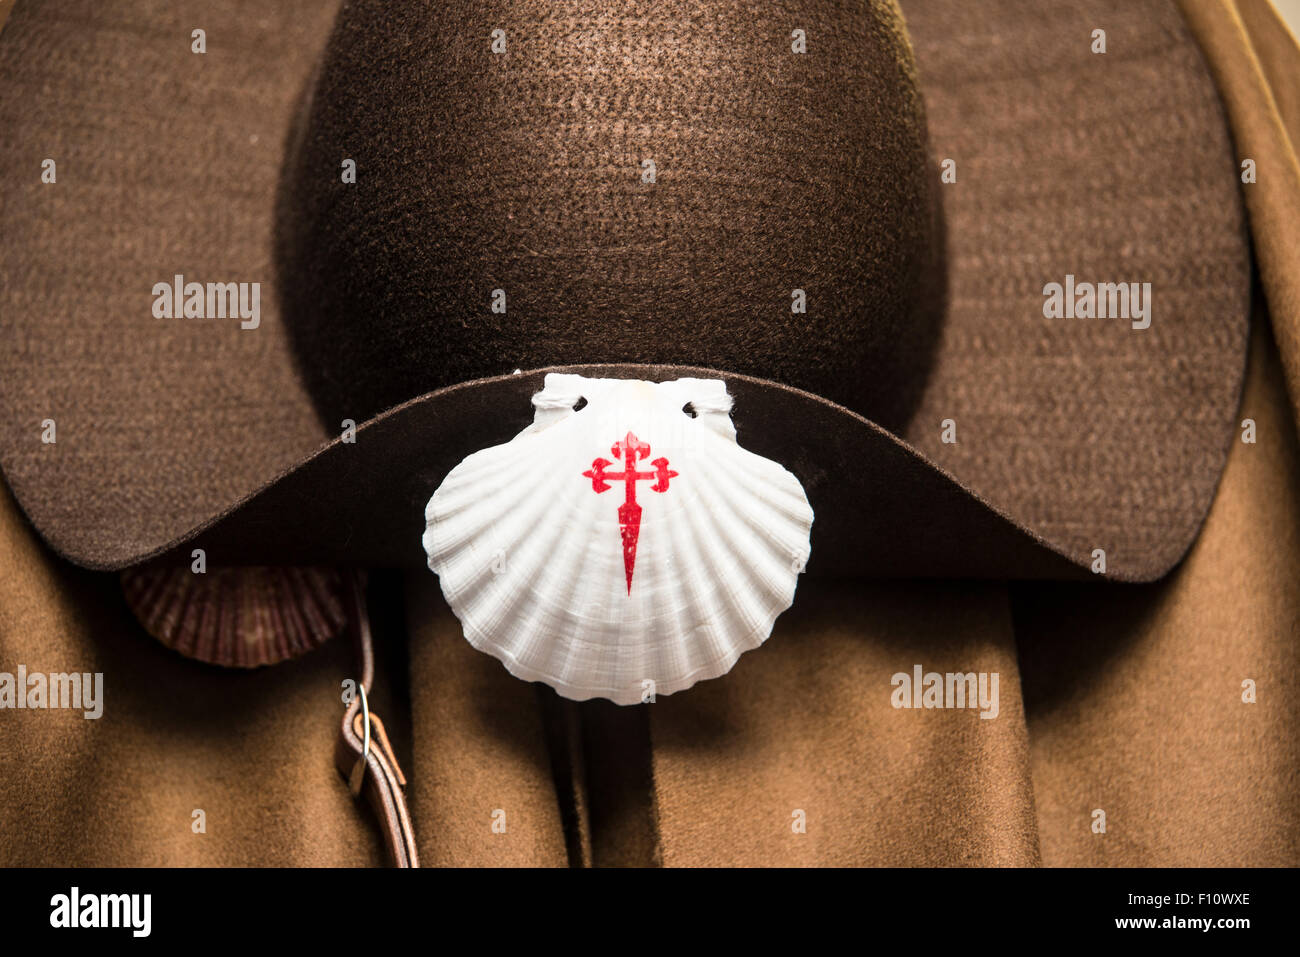 Pilgrims hat with shell symbols of way of st james stock photo pilgrims hat with shell symbols of way of st james biocorpaavc Image collections